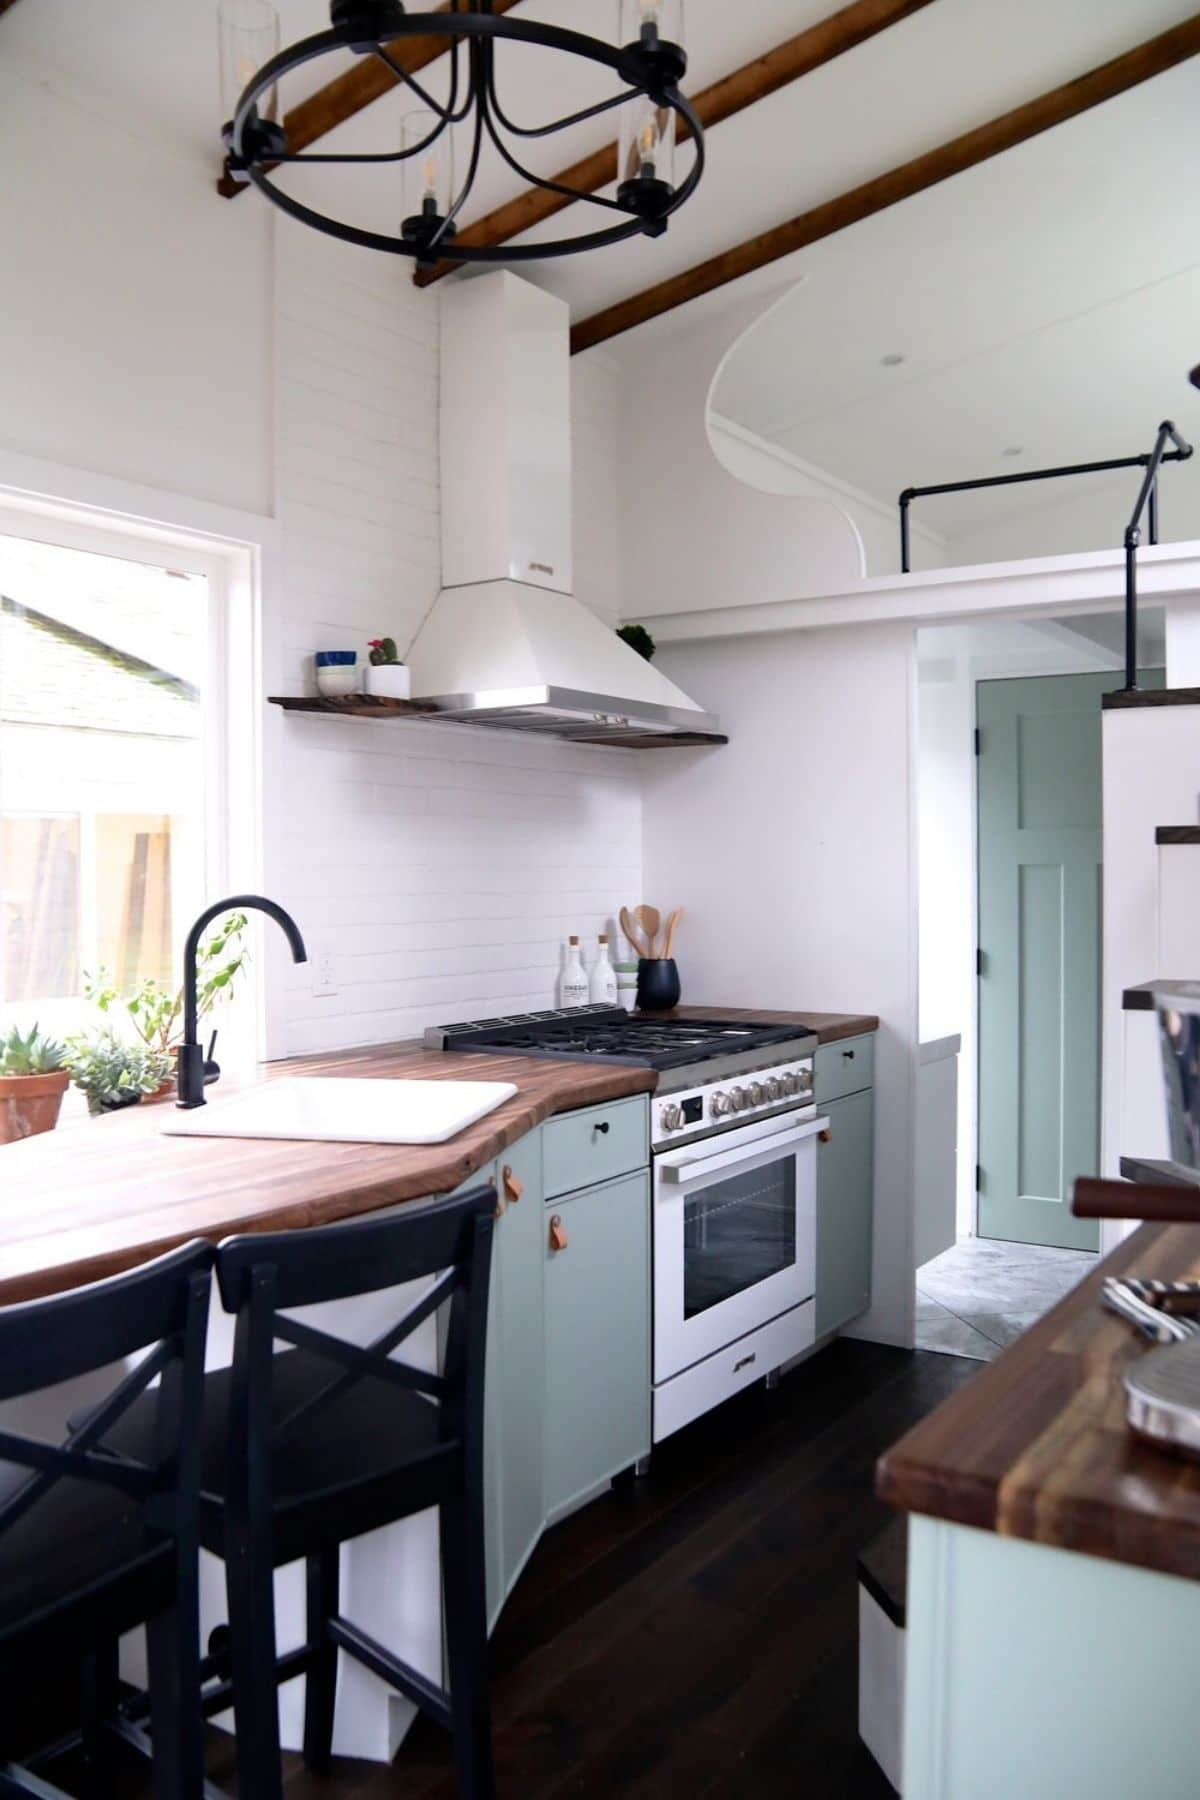 White full-sized stove in between light green cabinets in tiny home